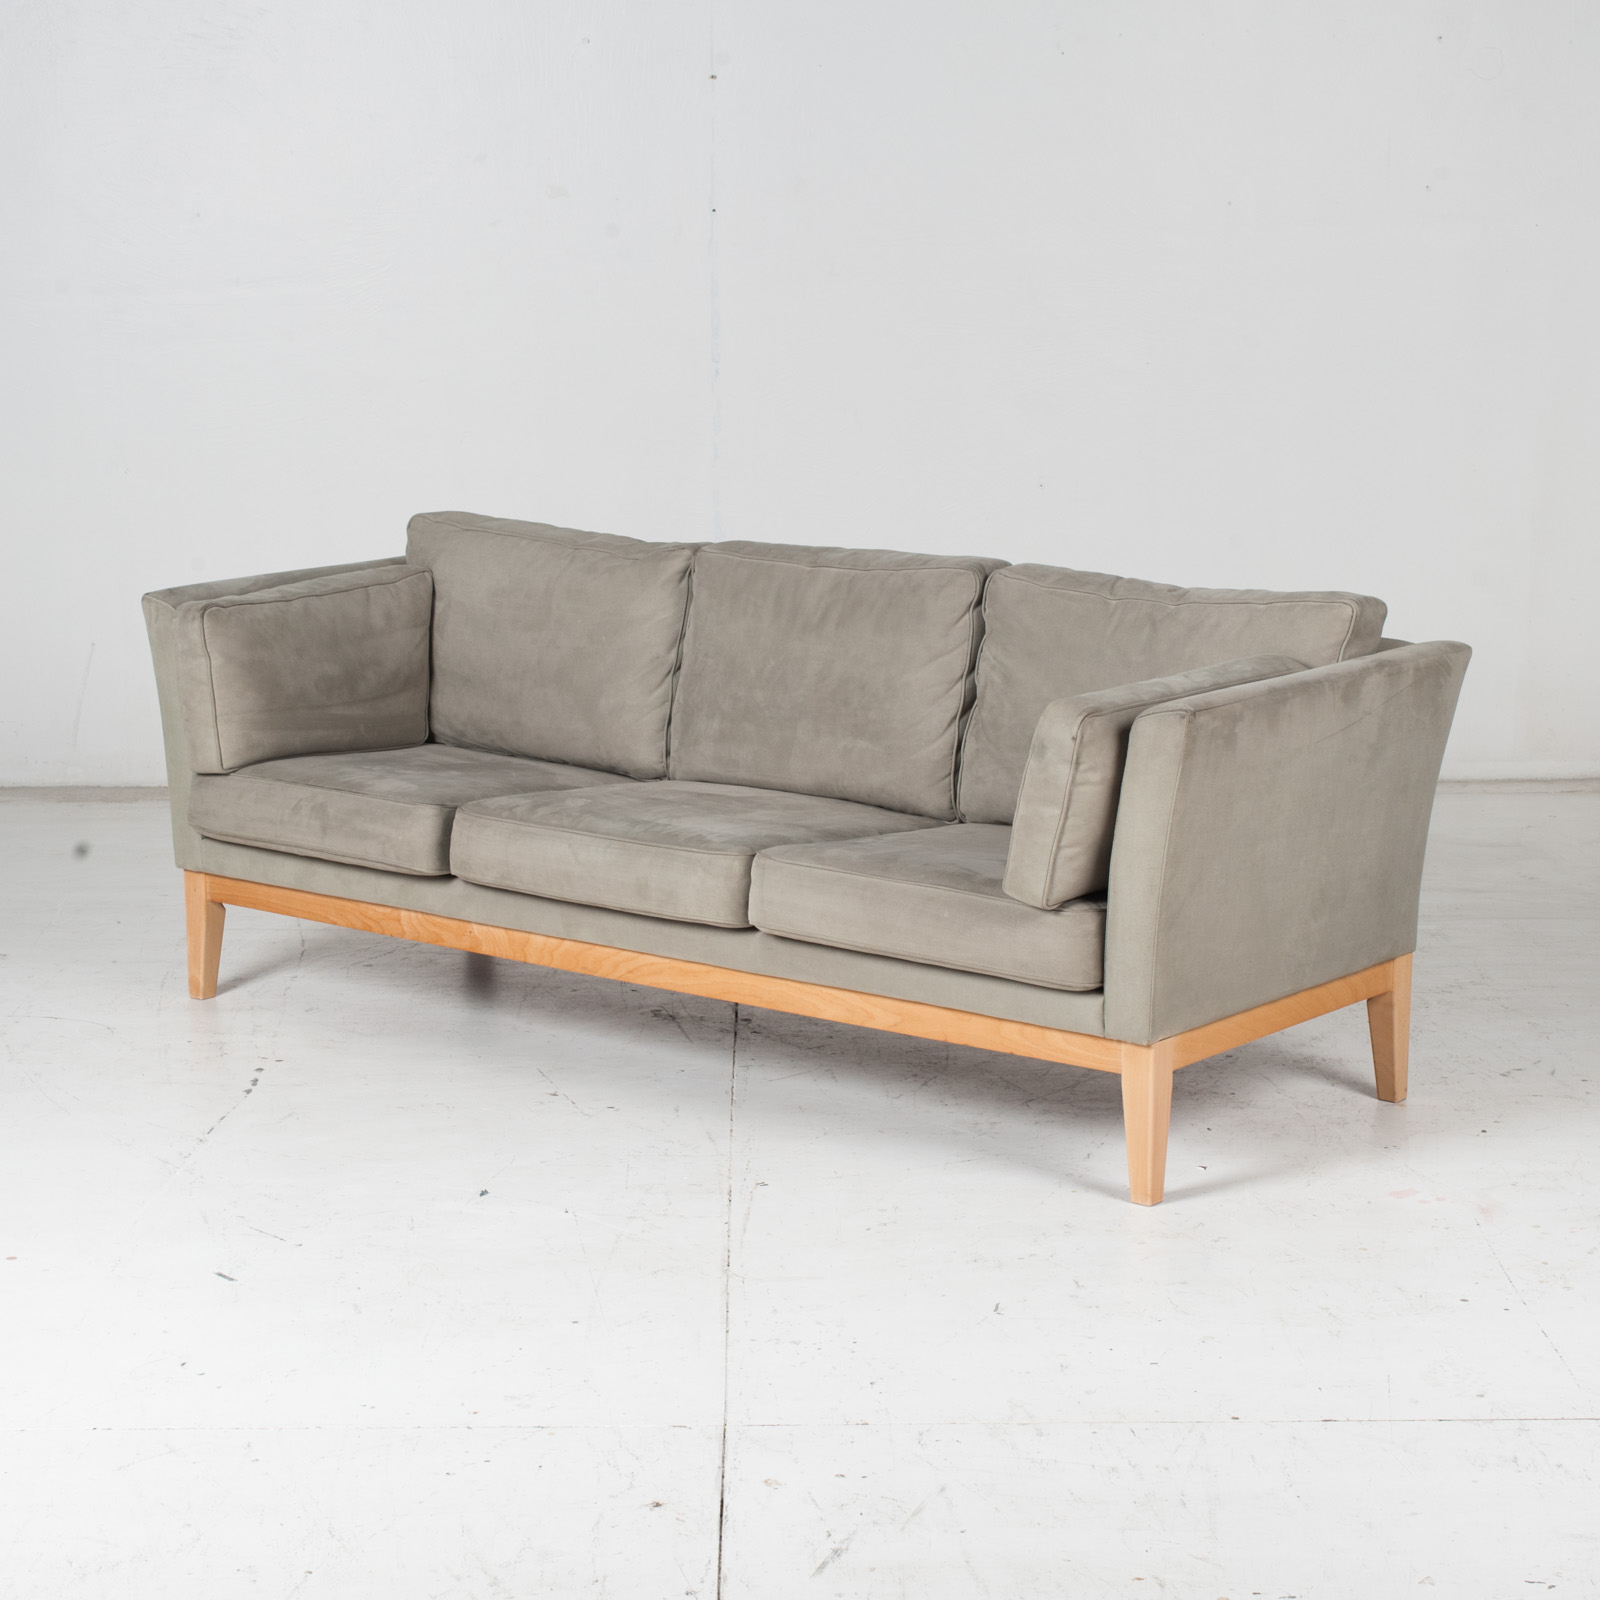 3 Seat Sofa By Stouby In Grey Macro Suede, 1960s, Denmark4